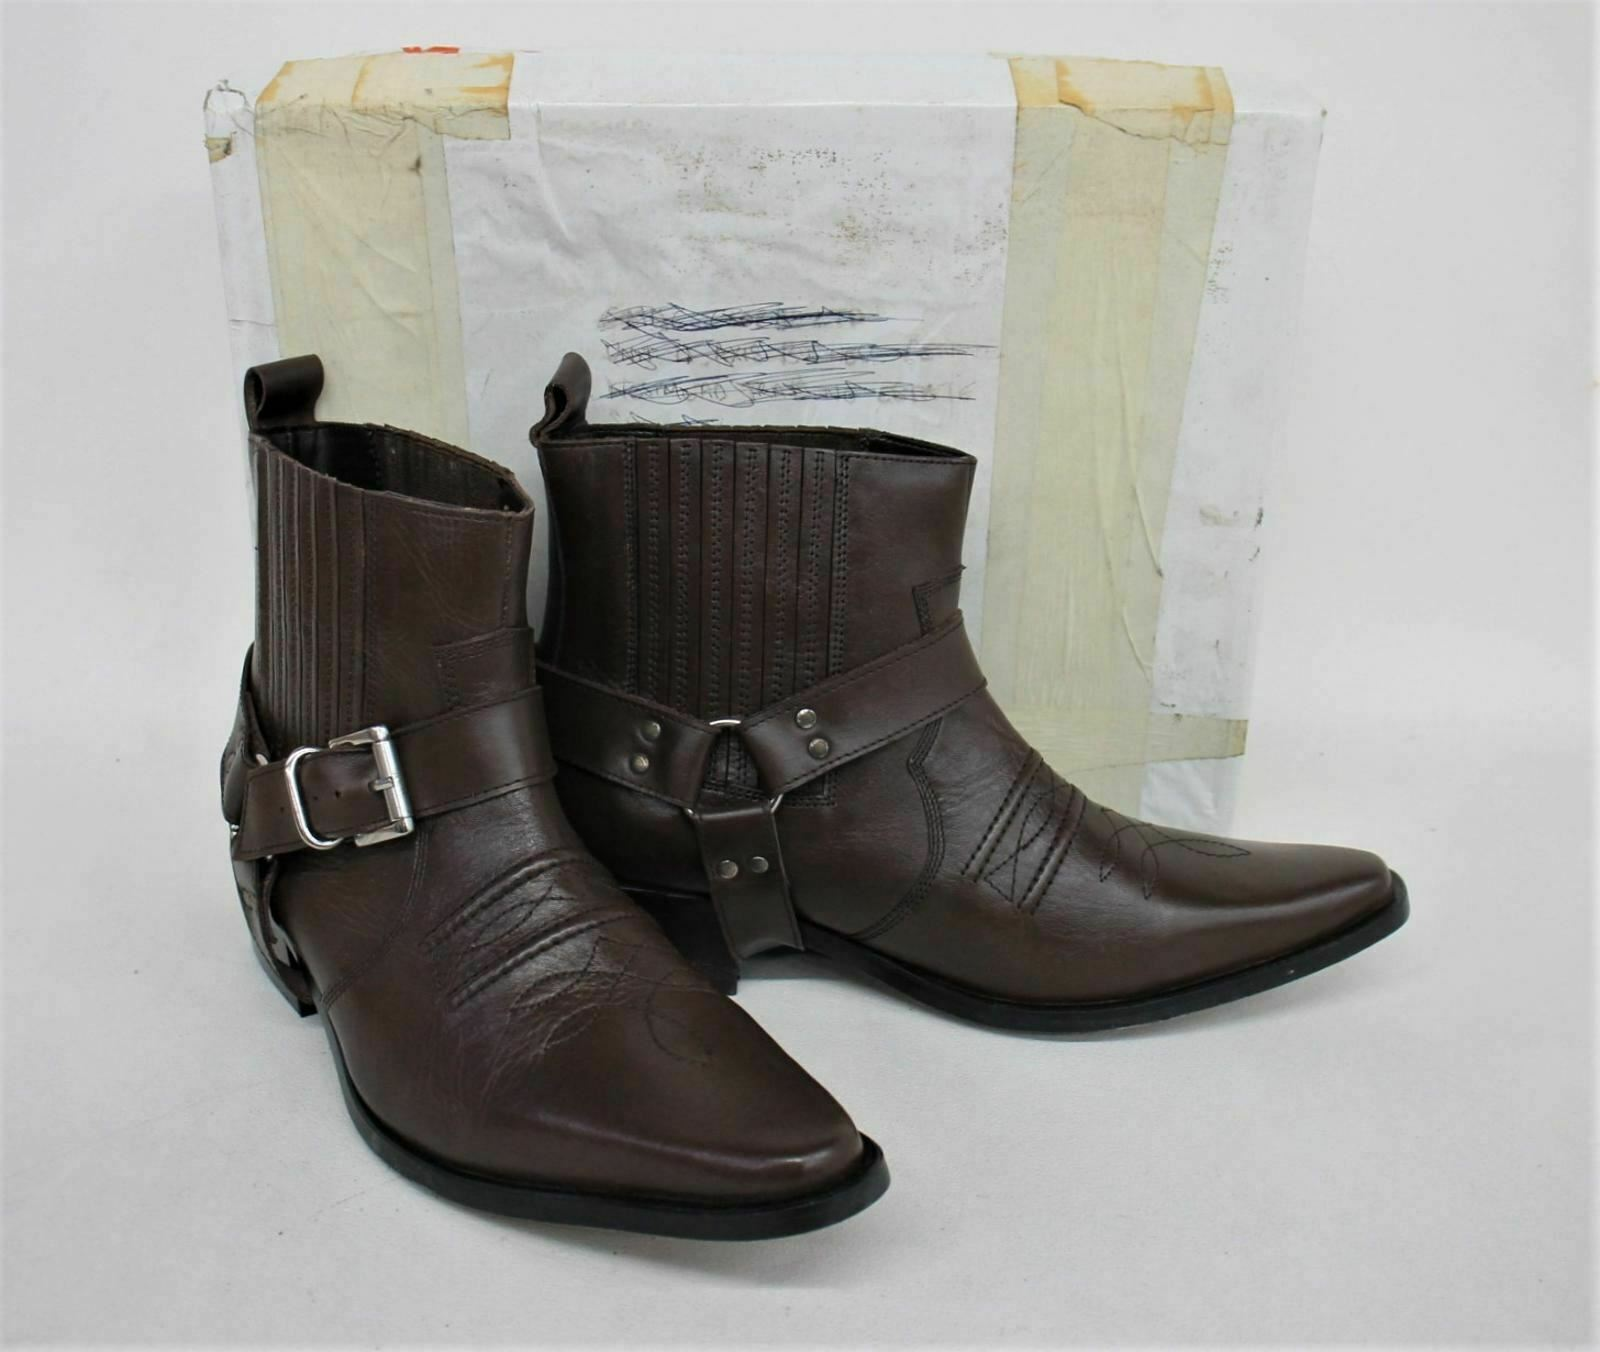 GRINGOS Men's Brown Leather Uppers Western Ankle Cowboy Boots UK9 EUR42 NEW